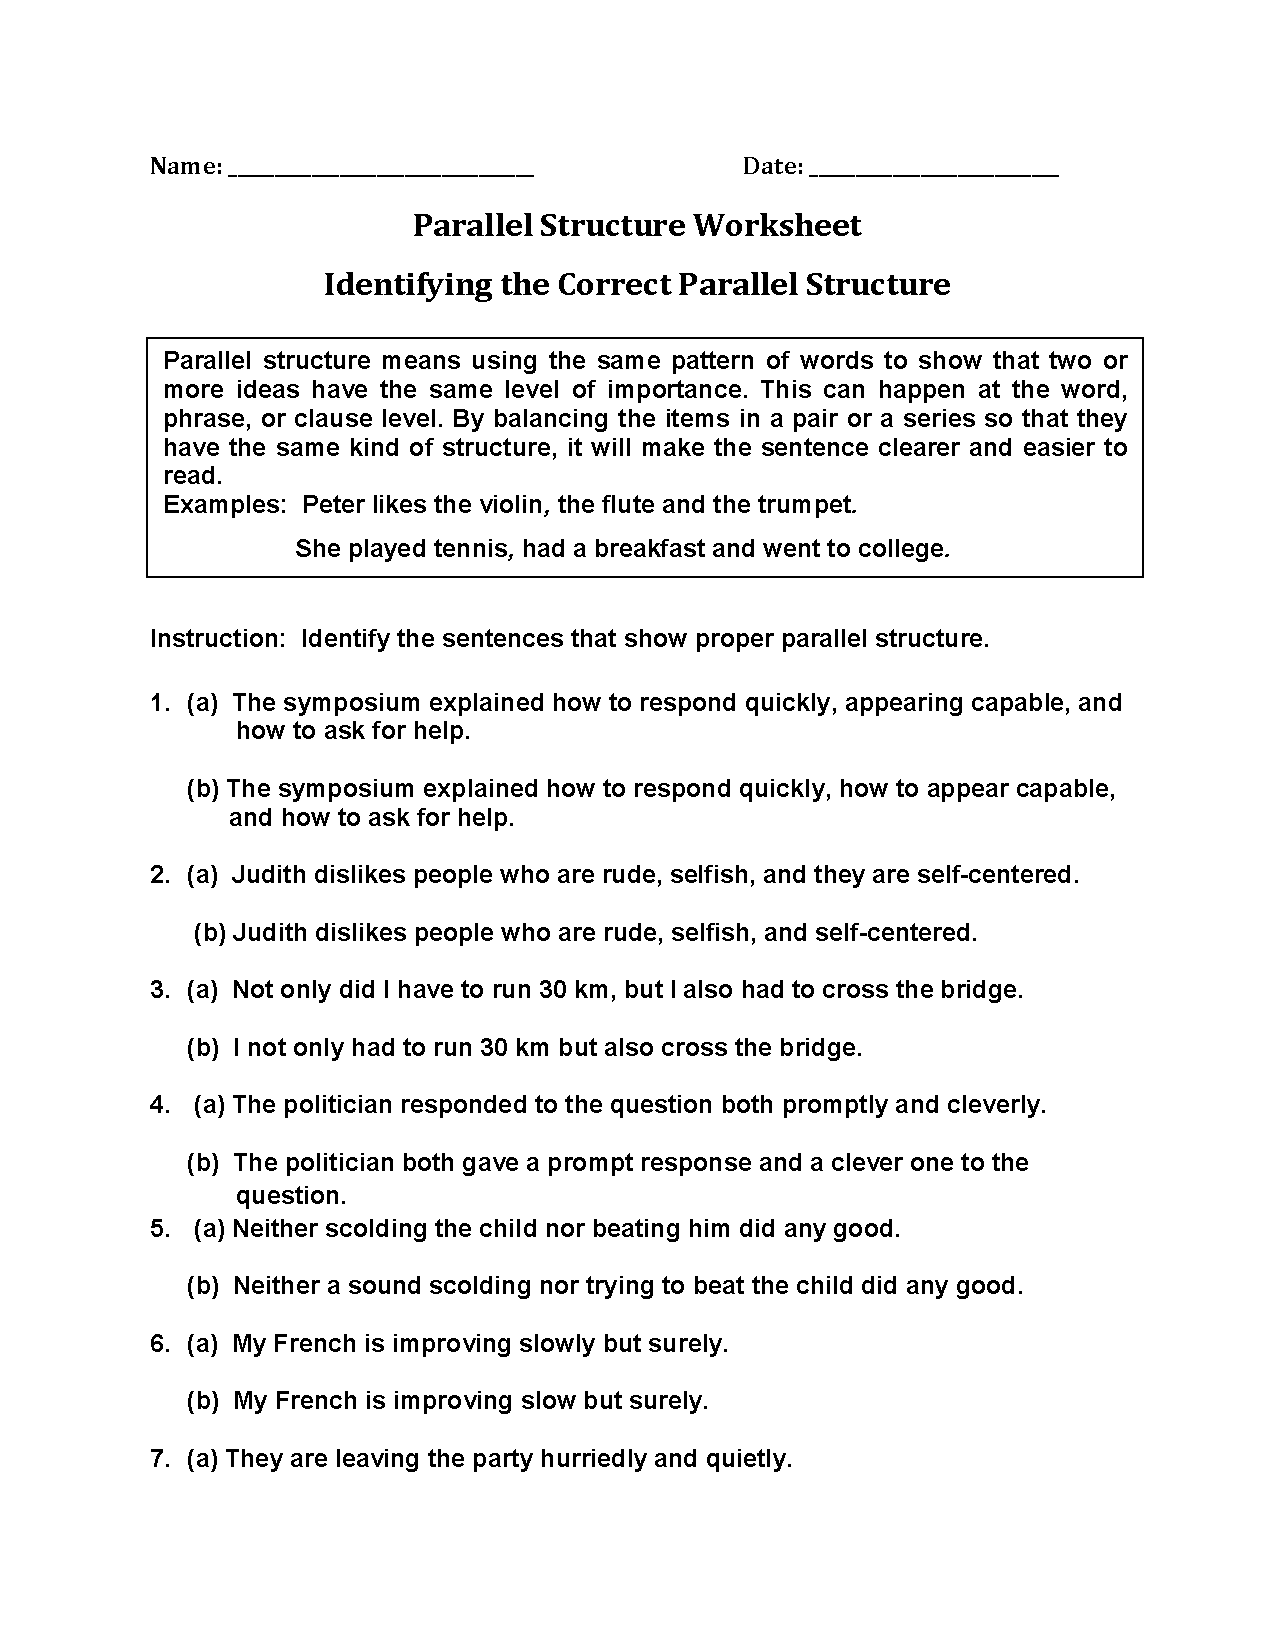 Identifying Correct Parallel Structure Worksheets – Sentence Structure Practice Worksheets